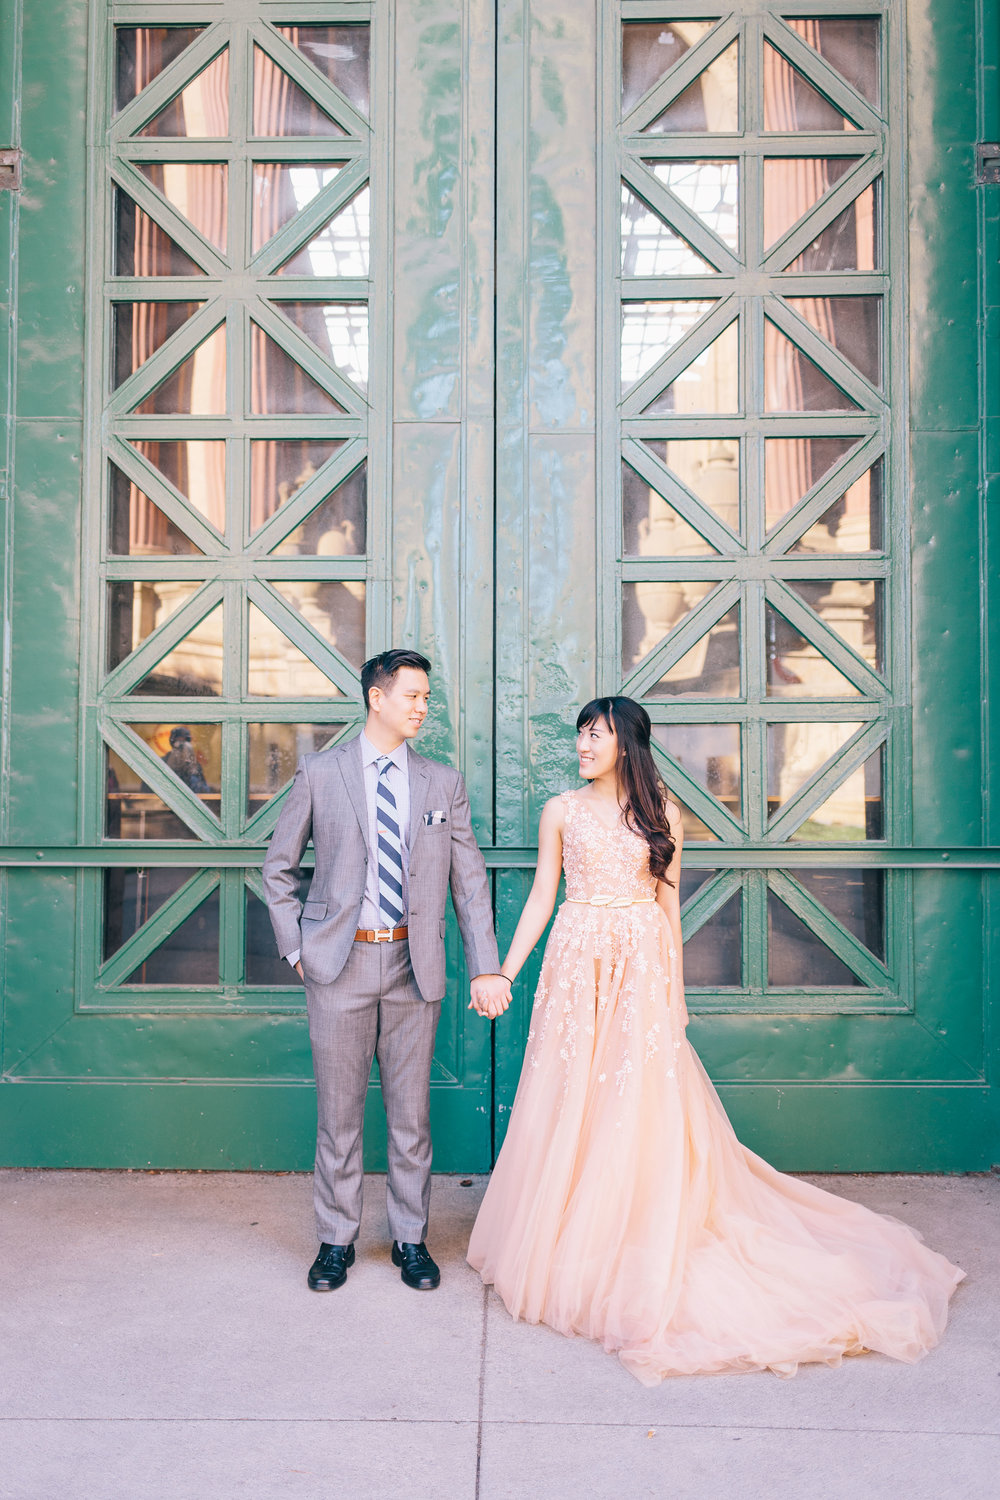 Best Engagement Photo Locations in San Francisco - Palace of Fine Arts Engagement Photos by JBJ Pictures (9).jpg